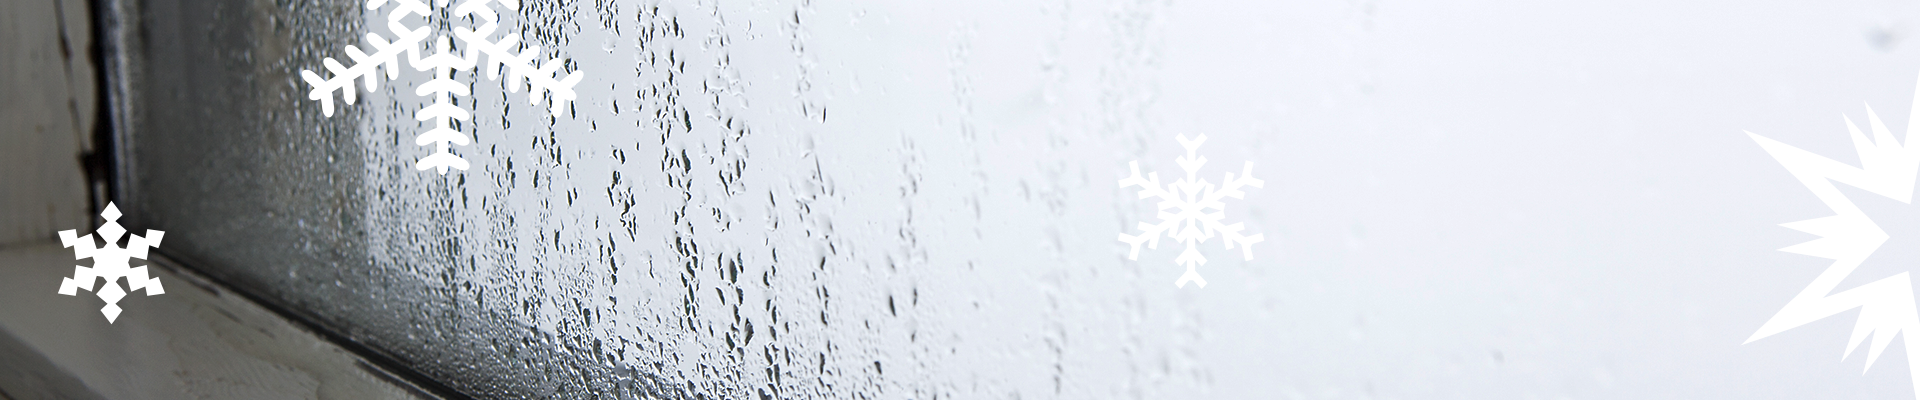 Prepare for condensation on your windows and window sills.